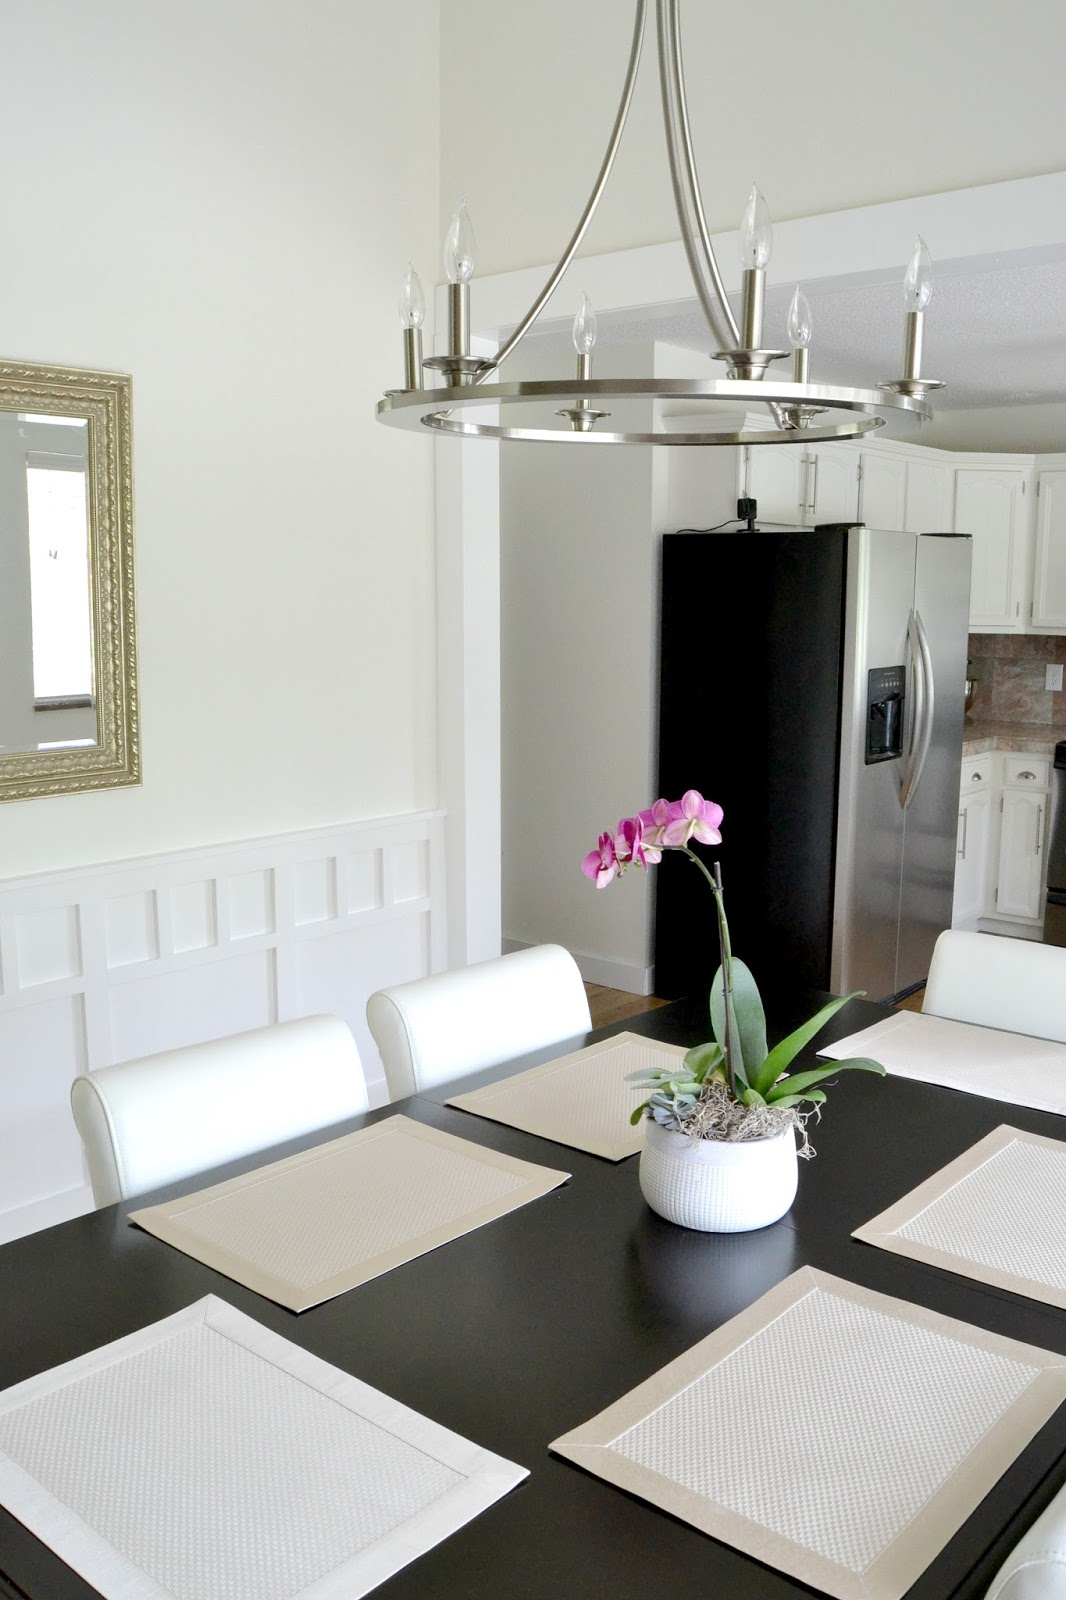 LiveLoveDIY: Our 1970\'s House Makeover Part 10: The Dining Room Reveal!